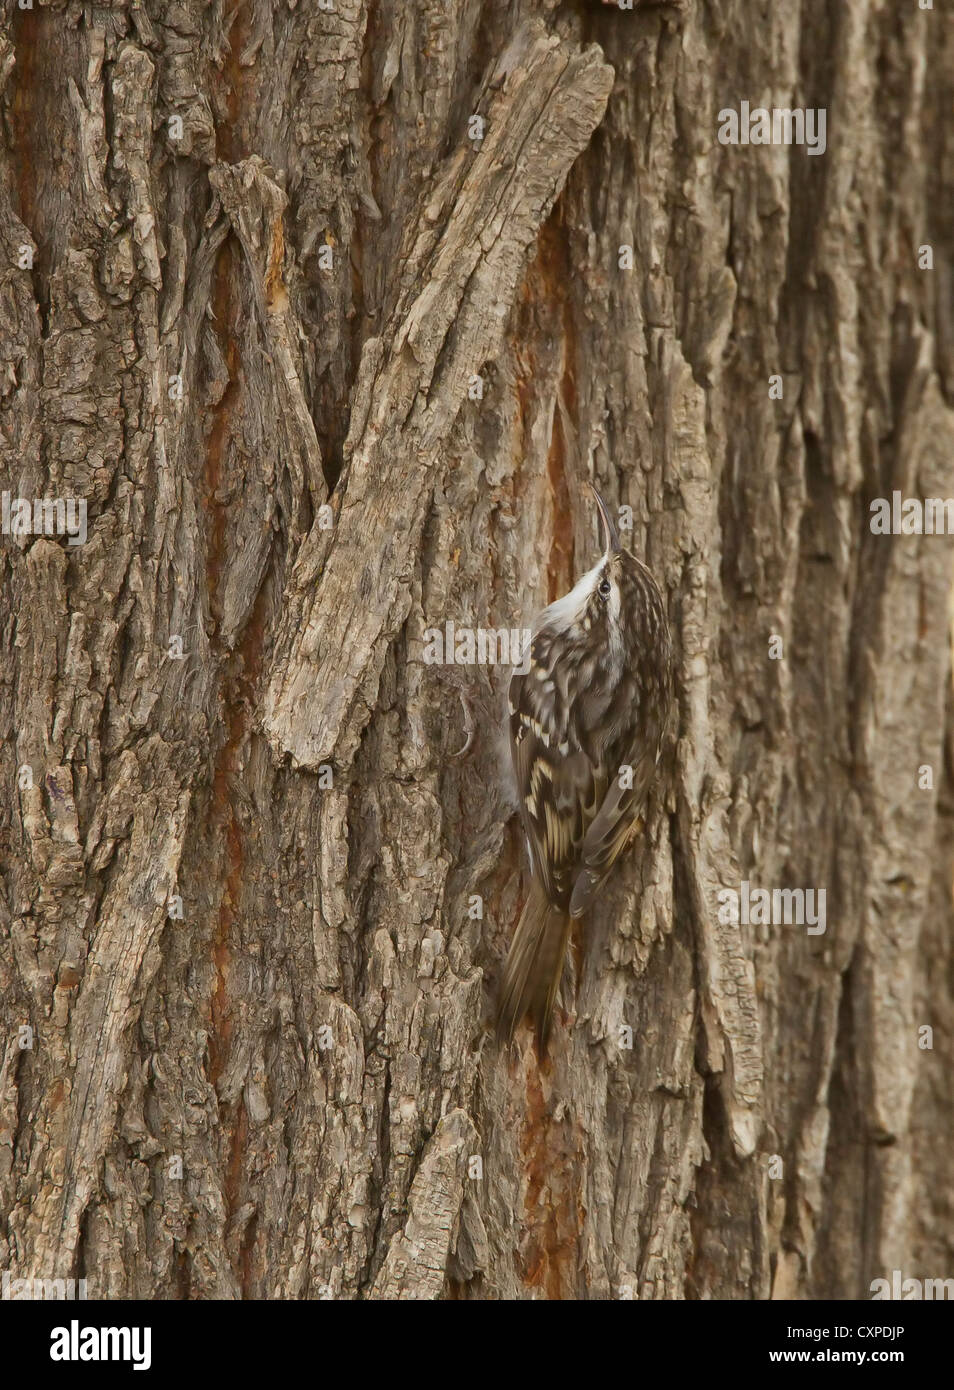 Short toed Treeceeper Certhia harterti Southern Turkey October well camouflaged on tree while searching for food - Stock Image